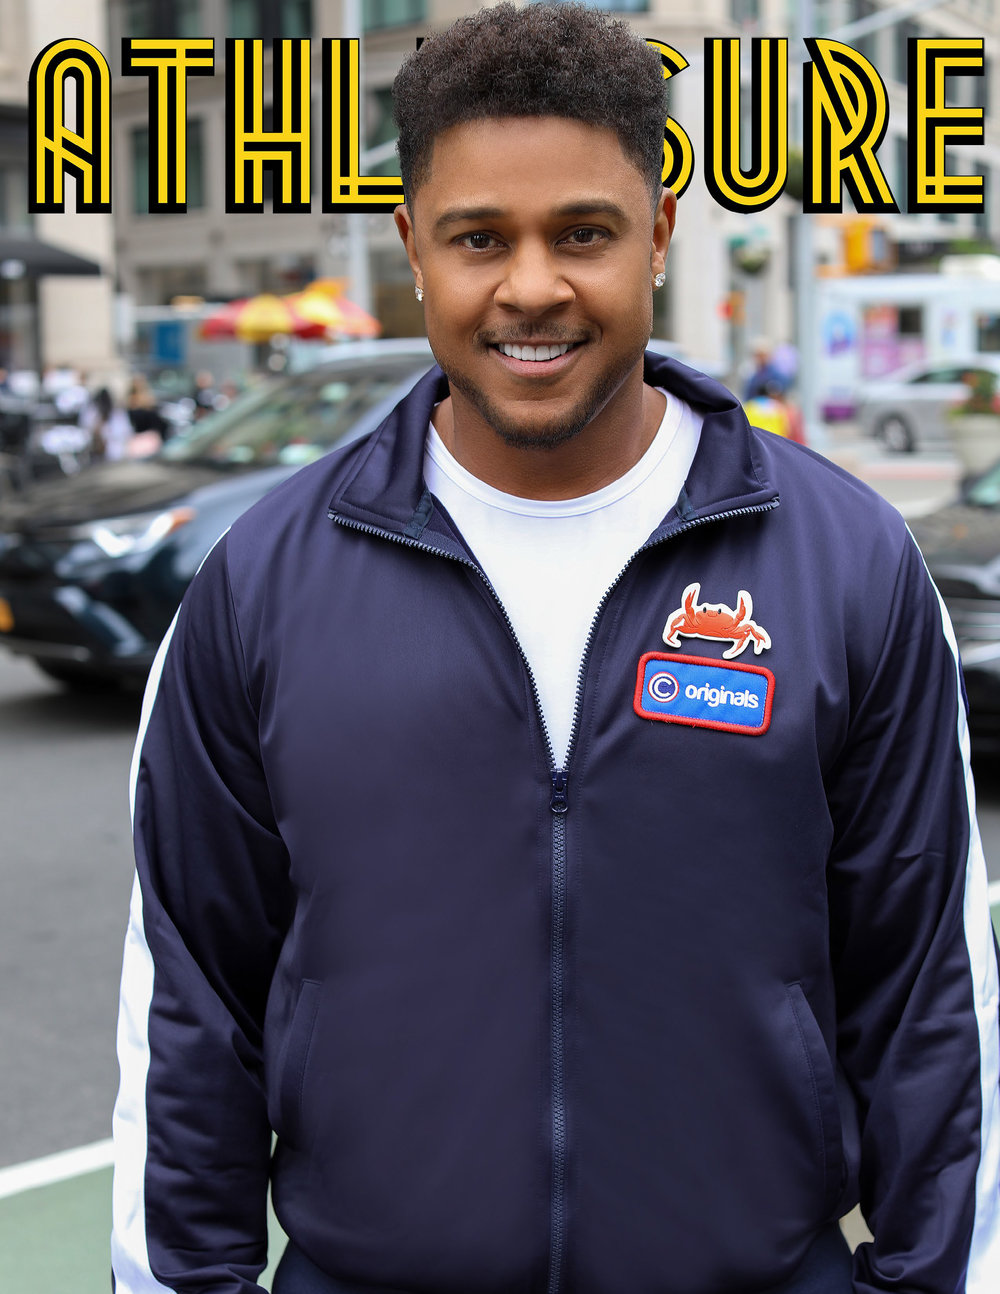 AM JUN HITTING THE STREETS WITH POOCH HALL FRONT COVER-1.jpg